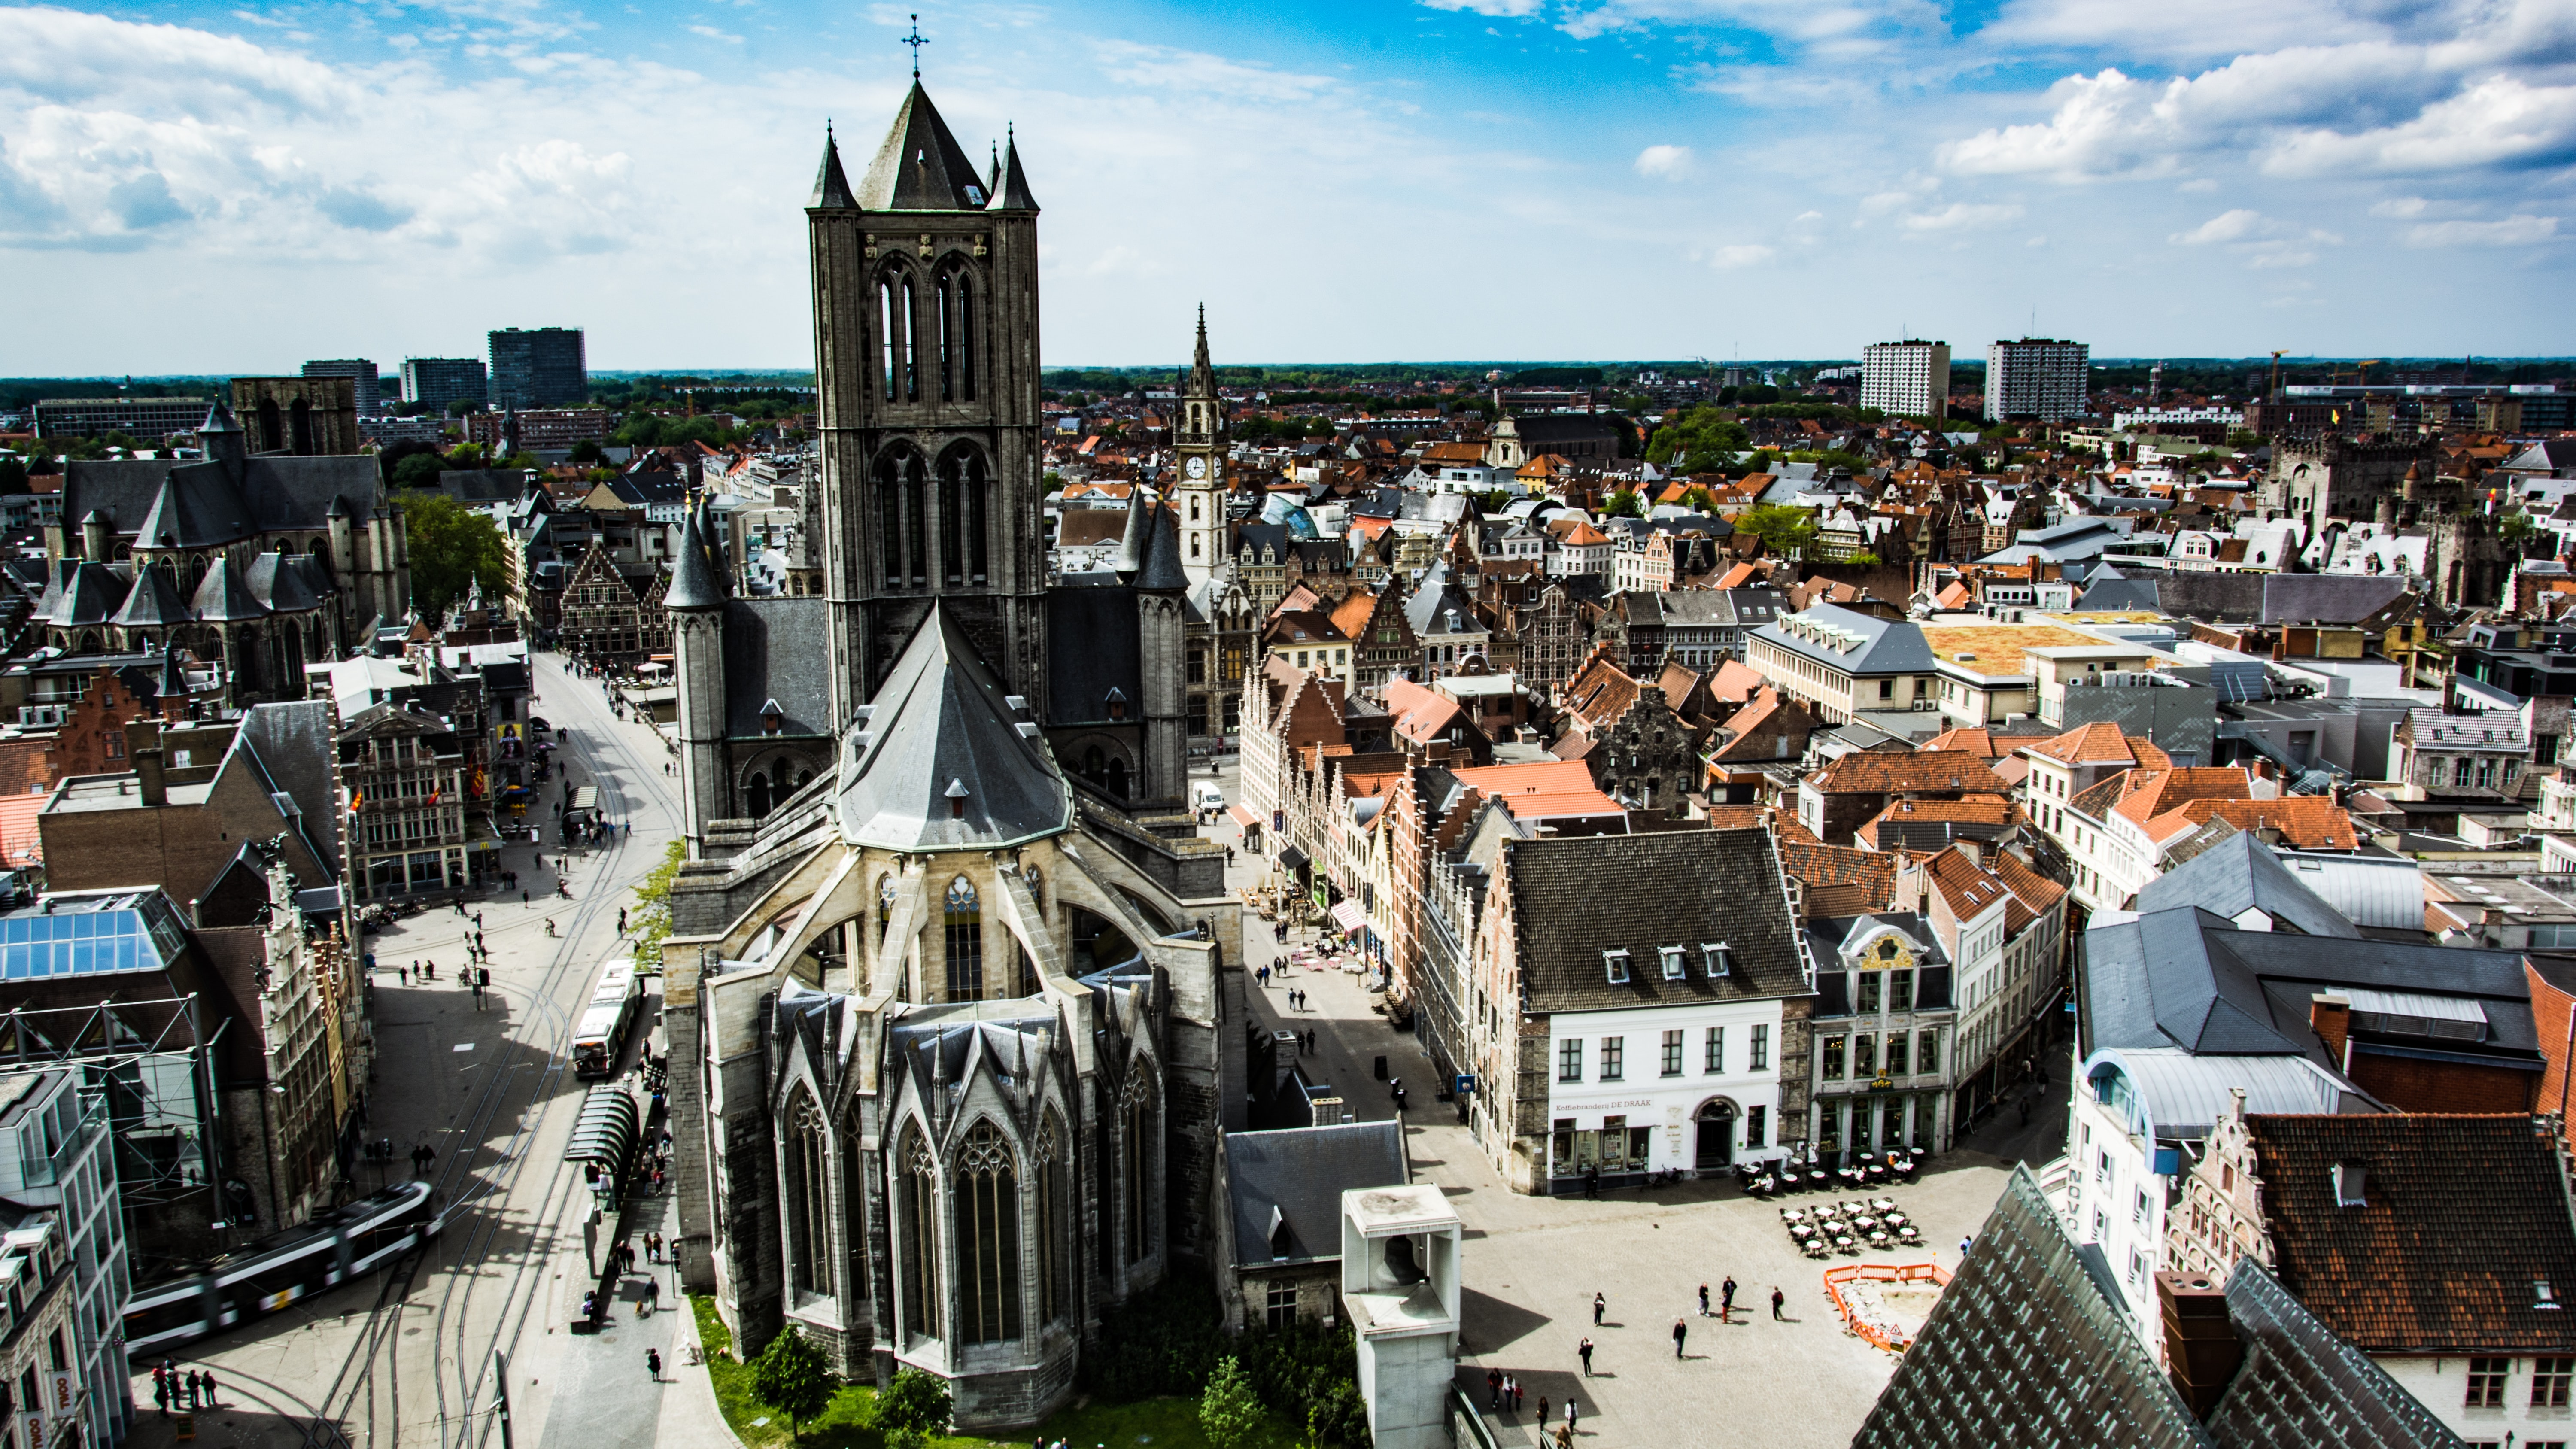 A shot from above the cathedral and architecture in the town of Ghent.